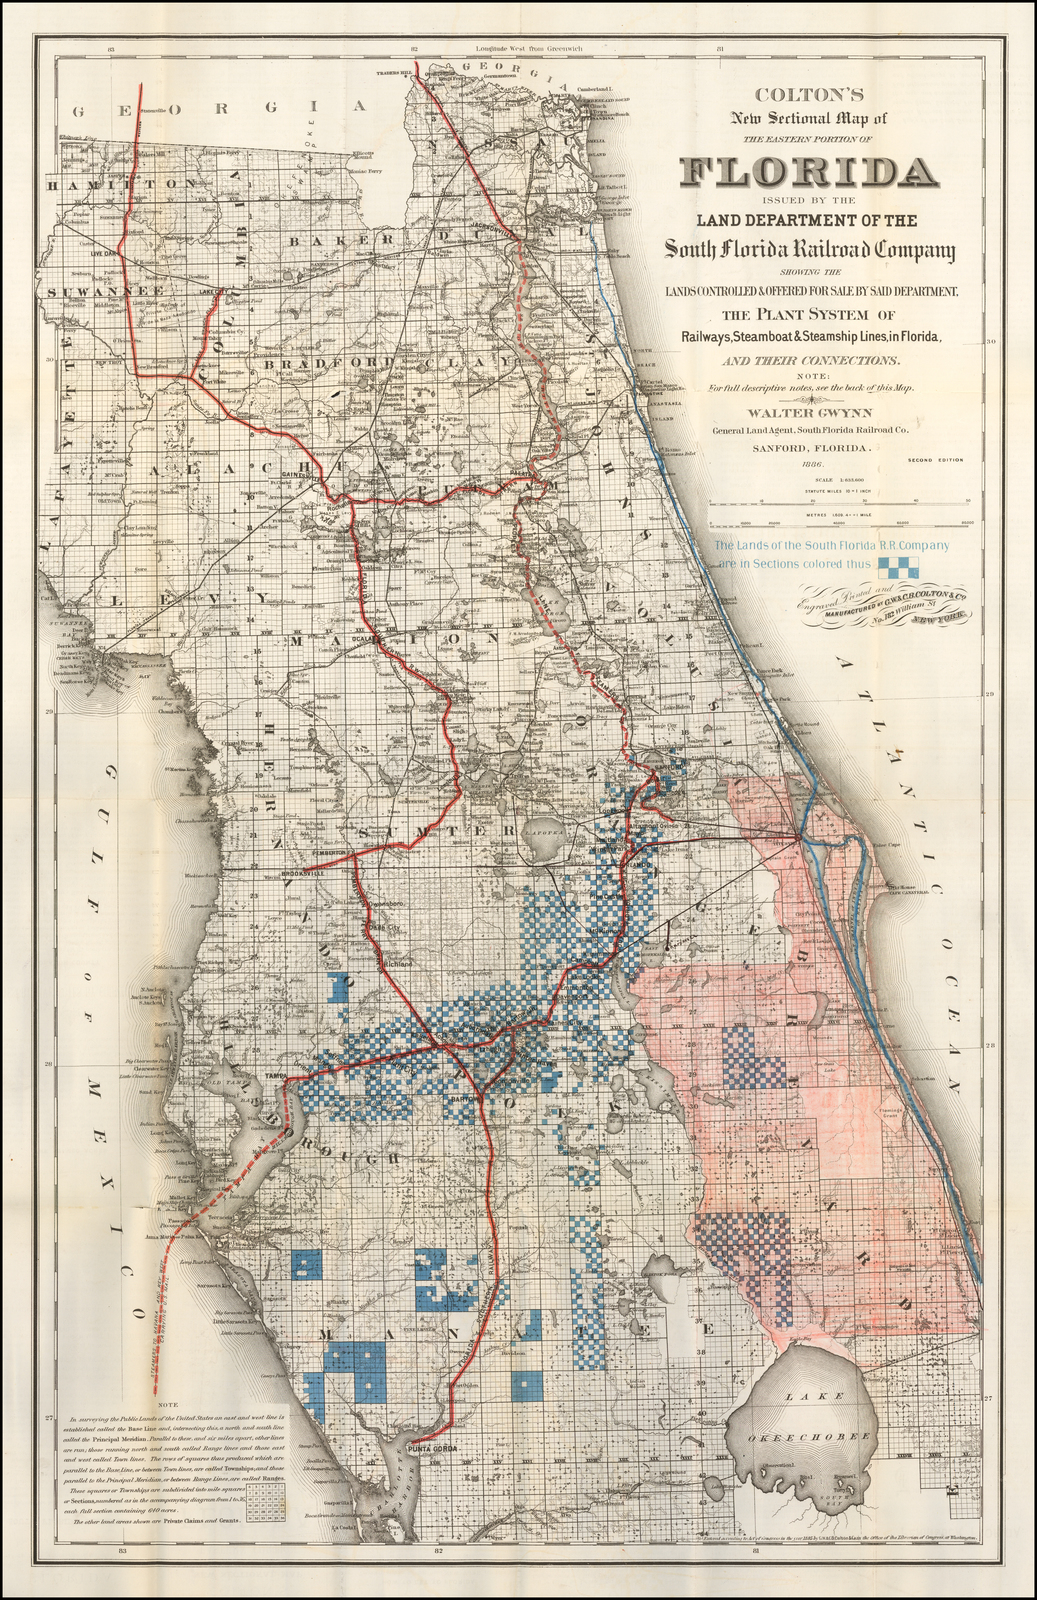 Full Map Of Florida.Colton S New Sectional Map Of The Eastern Portion Of Florida Issued